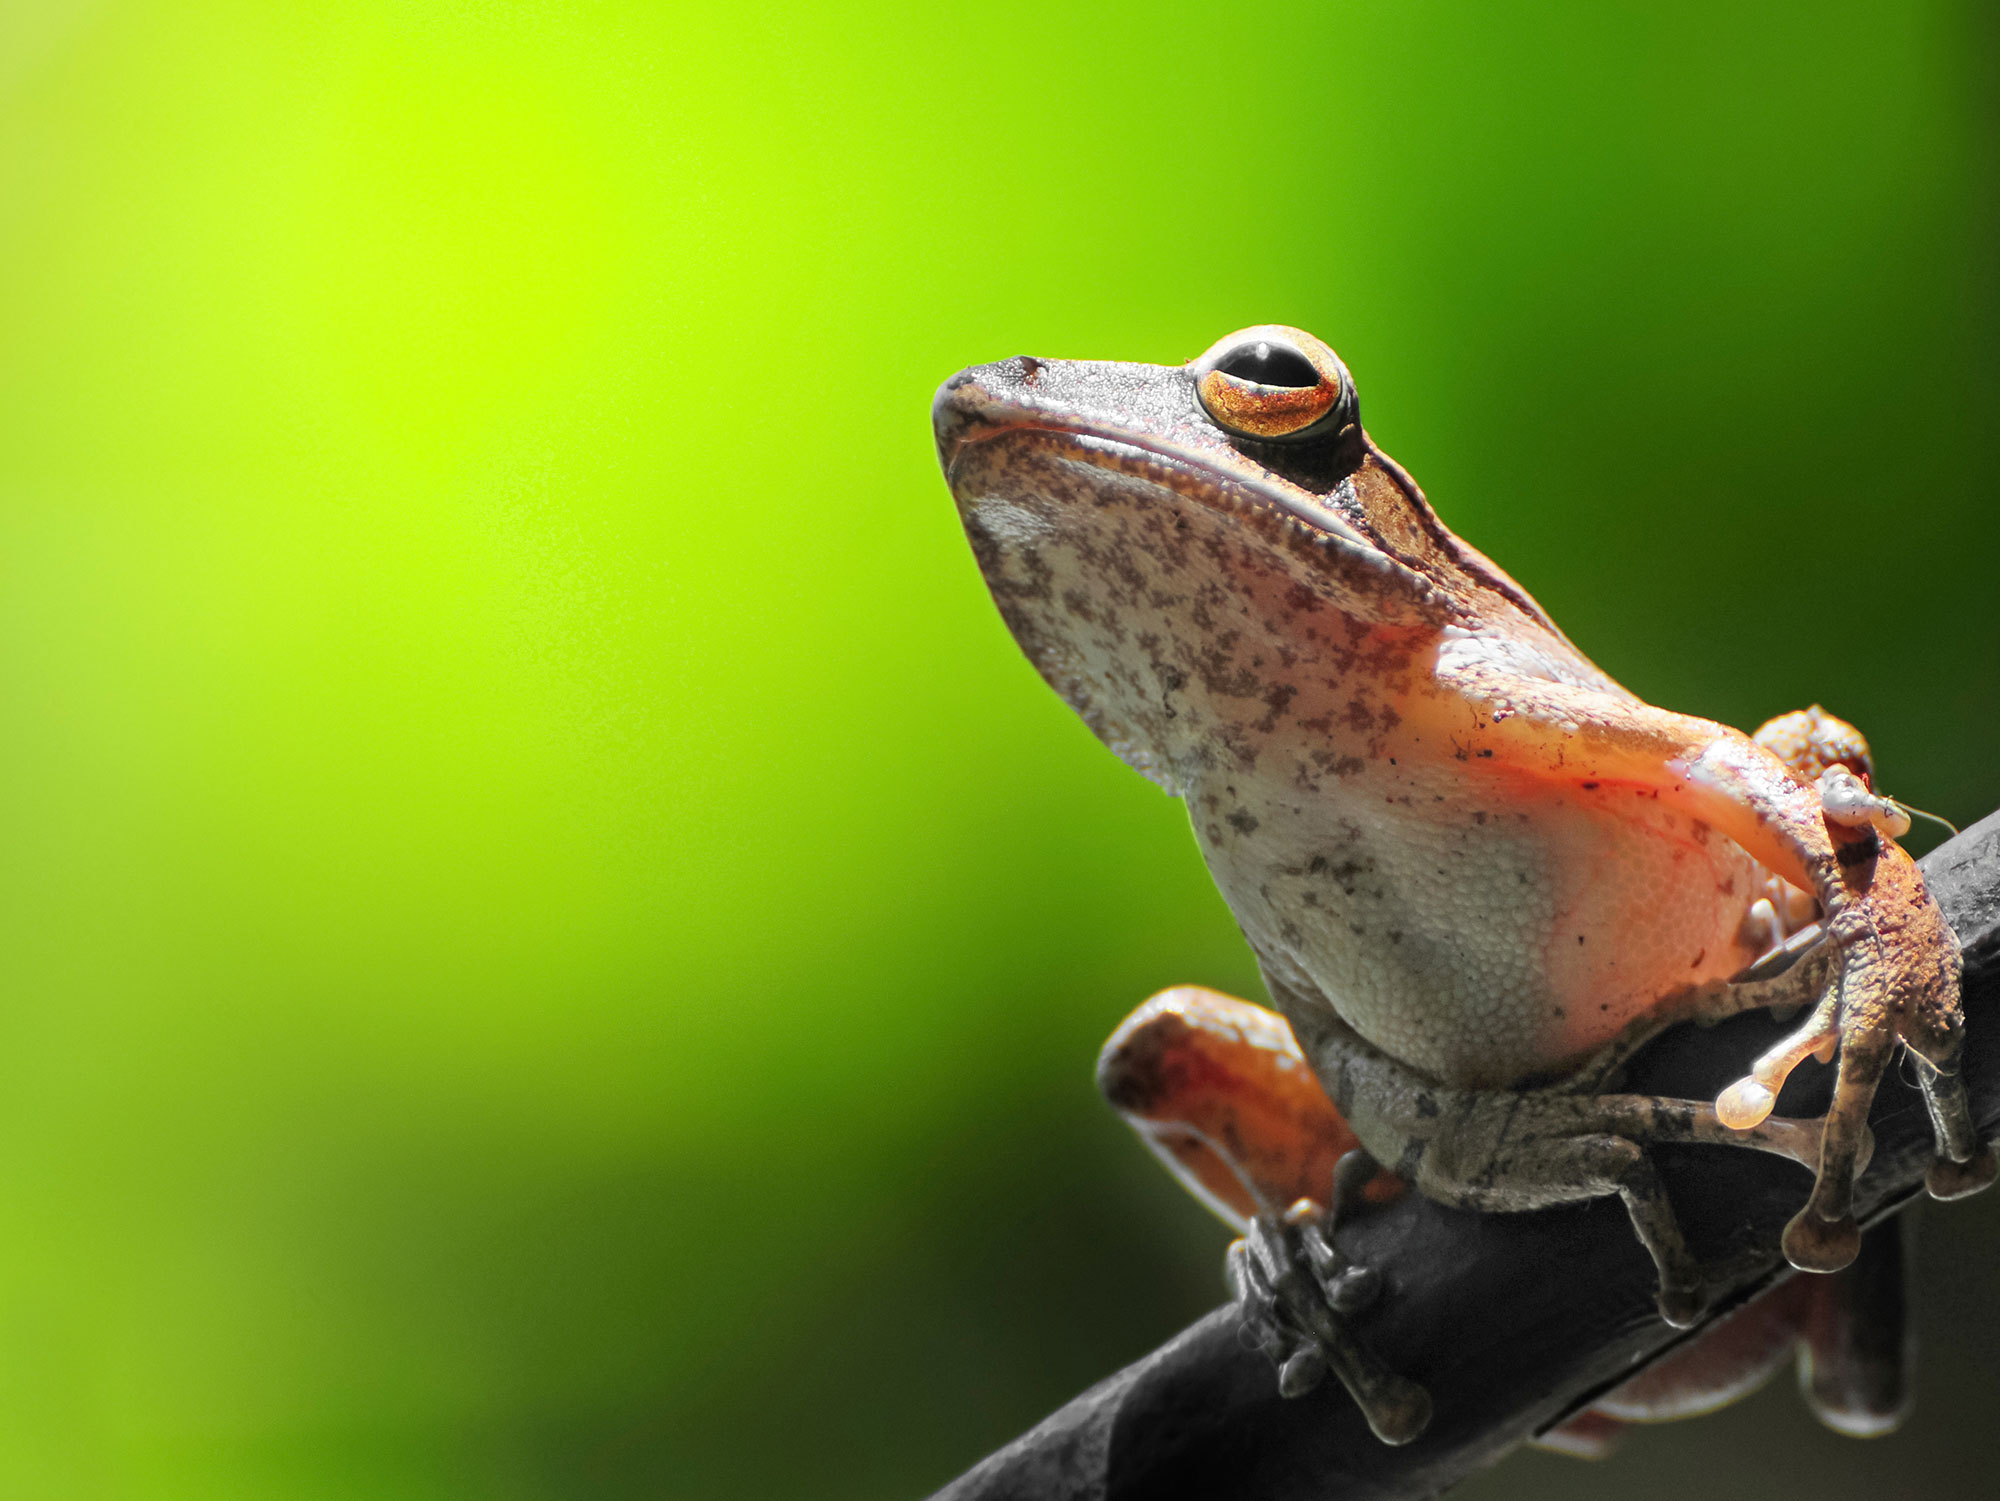 Screaming Frog Guide to Doing Almost Anything